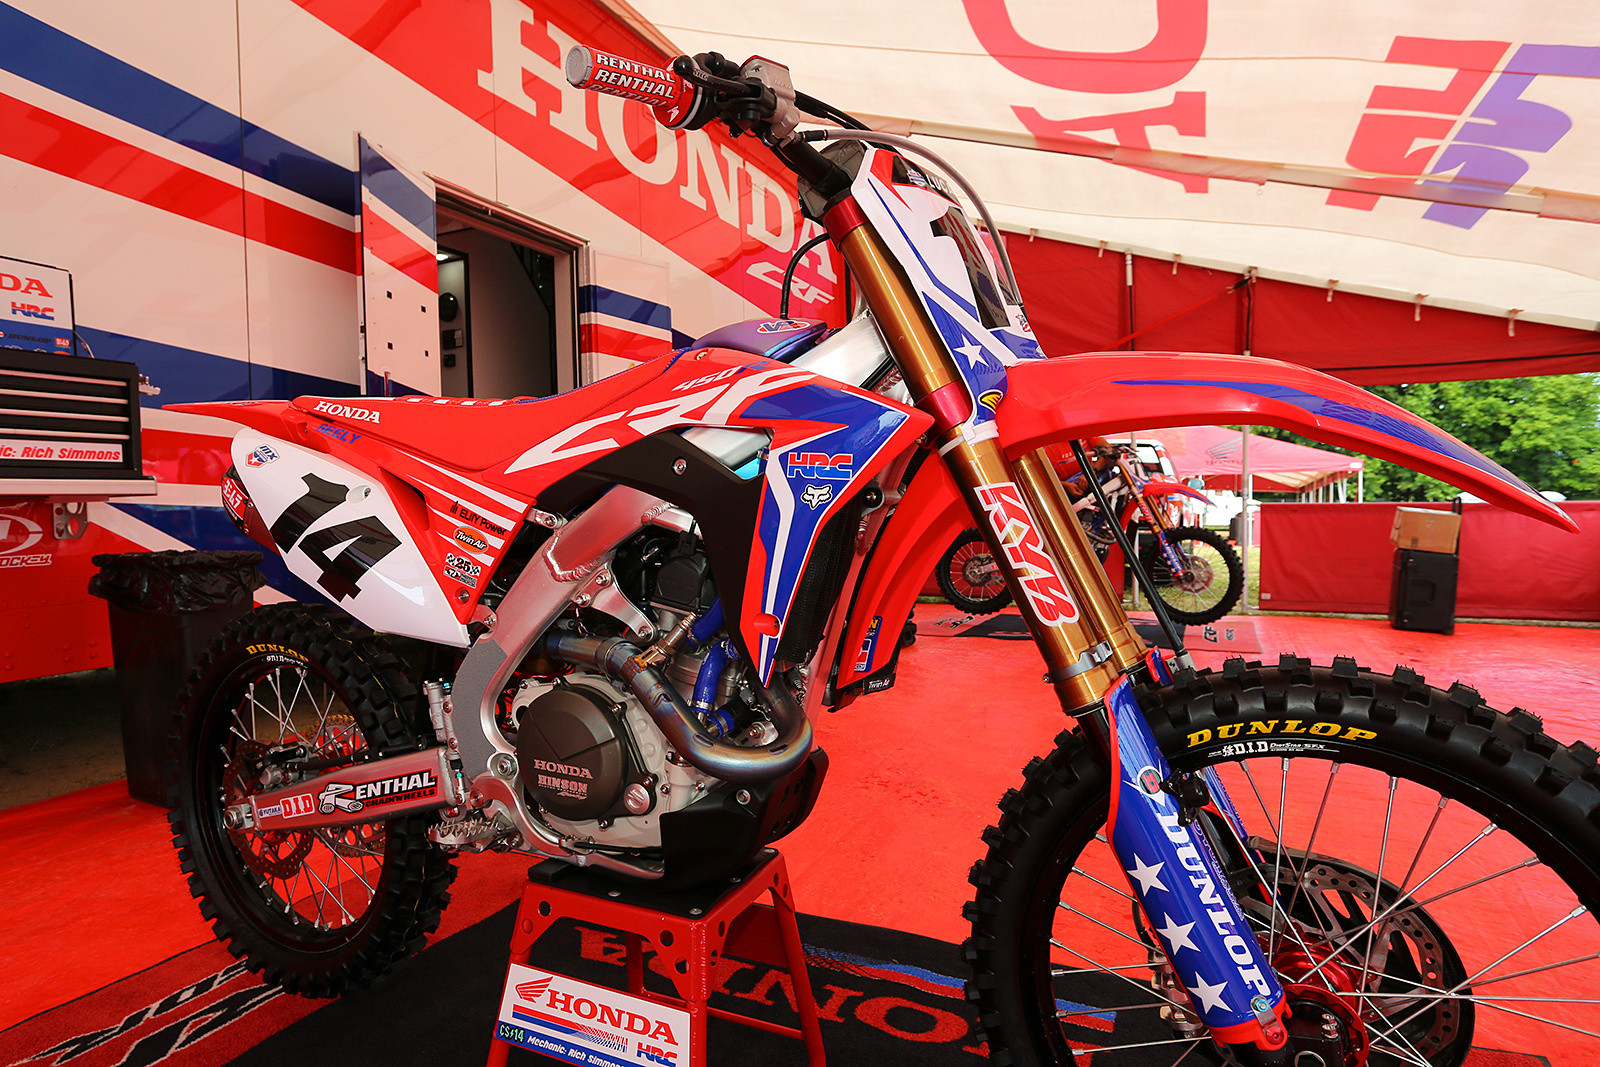 The Team Honda HRC bikes of Cole Seely, Christian Craig, and Toshiki Tomita got the stars and stripes treatment.